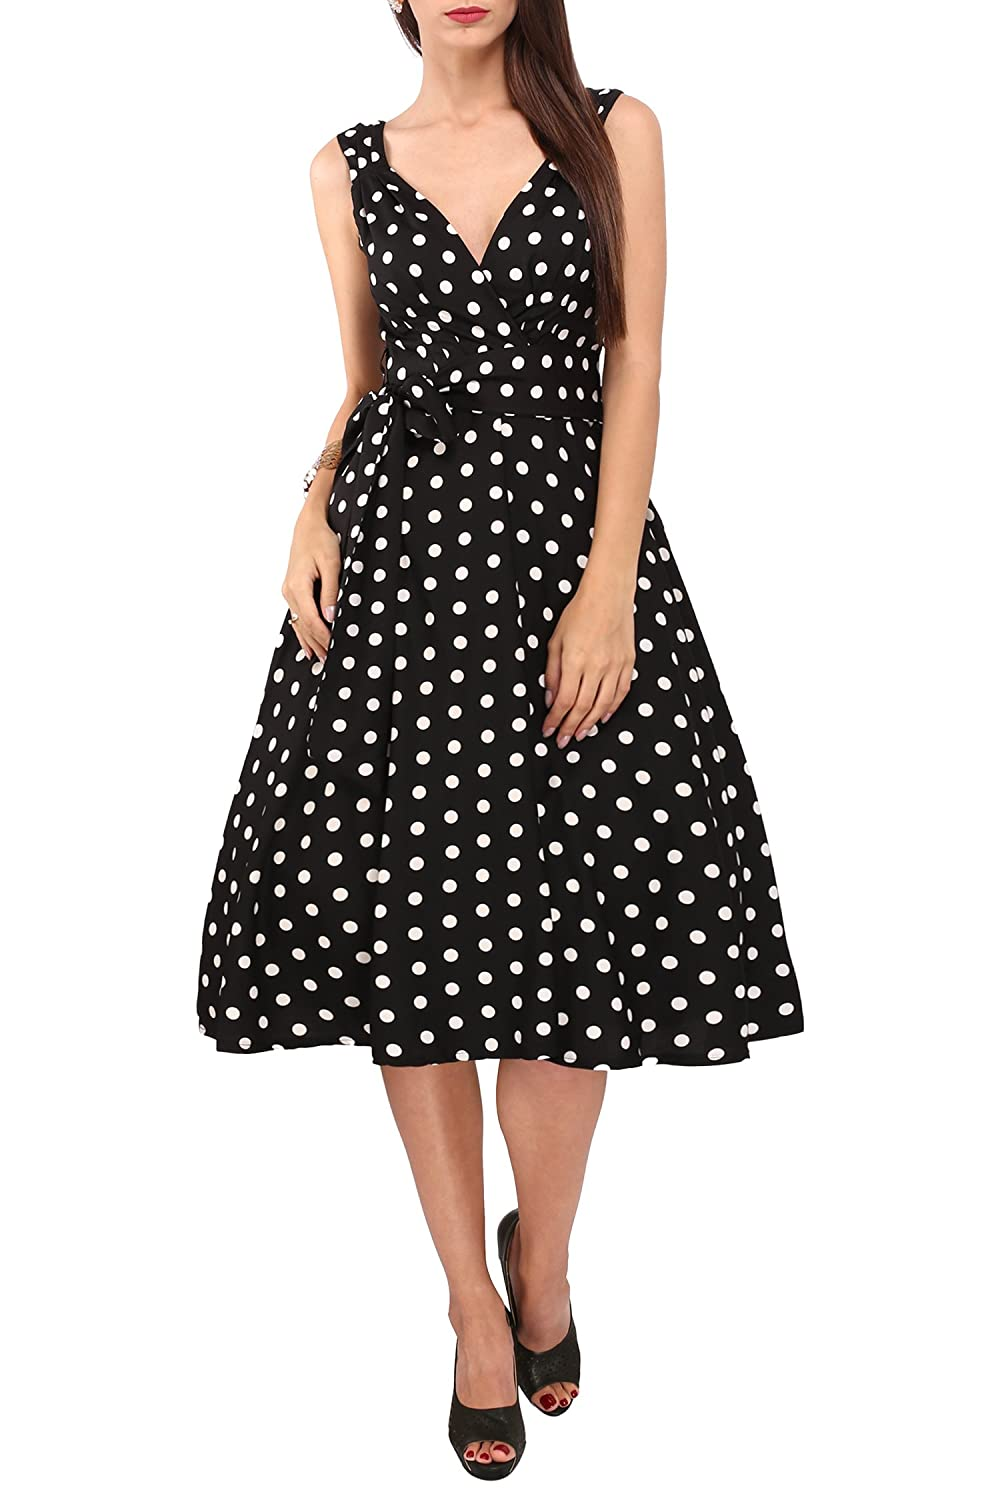 f3bf2922b2f0f Polka Dot Printed 1940s and 1950s Style Swing Vintage Rockabilly Ladies  Retro Prom Party Dresses Made from 100% Polyester - V Neck Cross-Over Cut